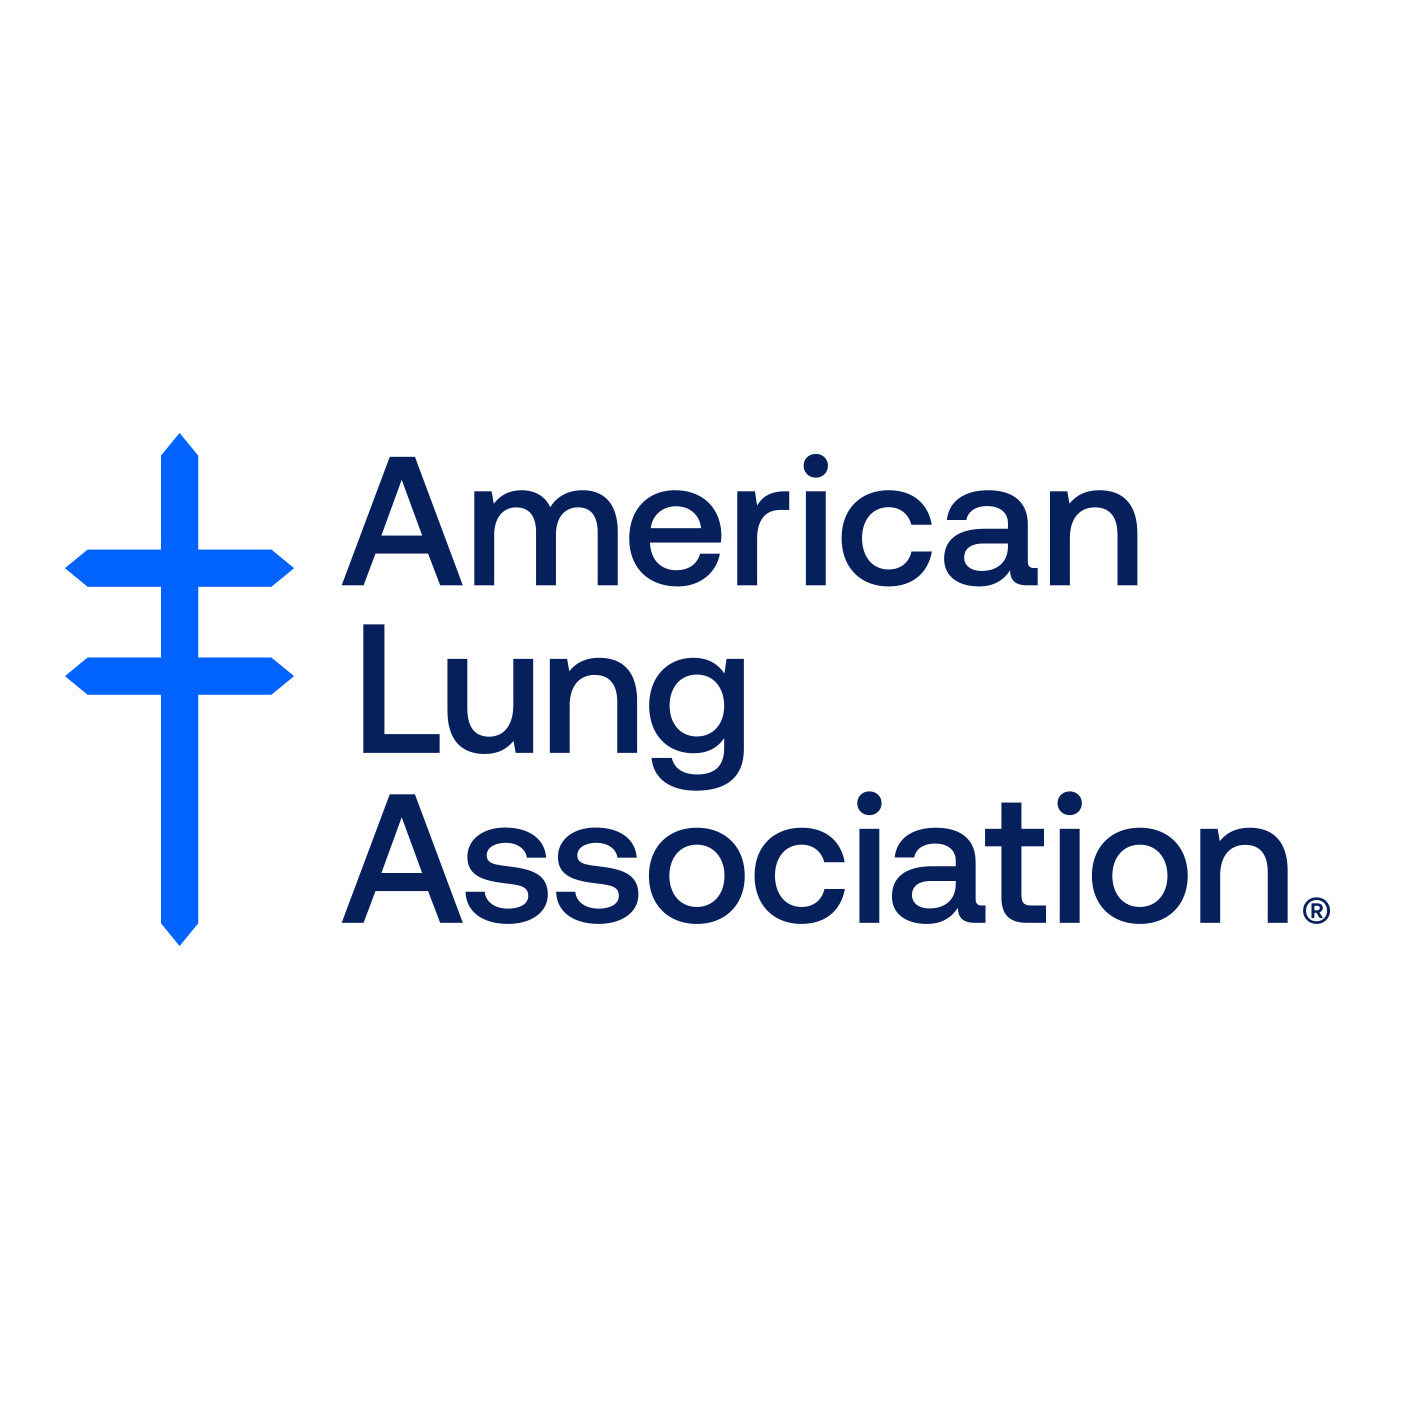 American Lung Association logo with blue vertical line crossed by two horizontal lines